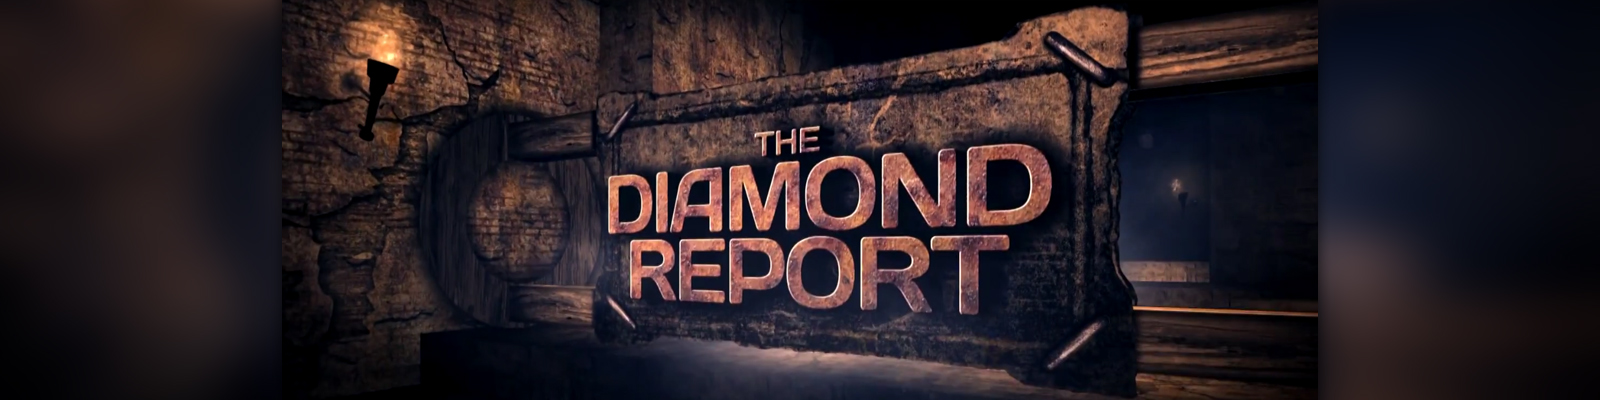 The Diamond Report with Doug Diamond